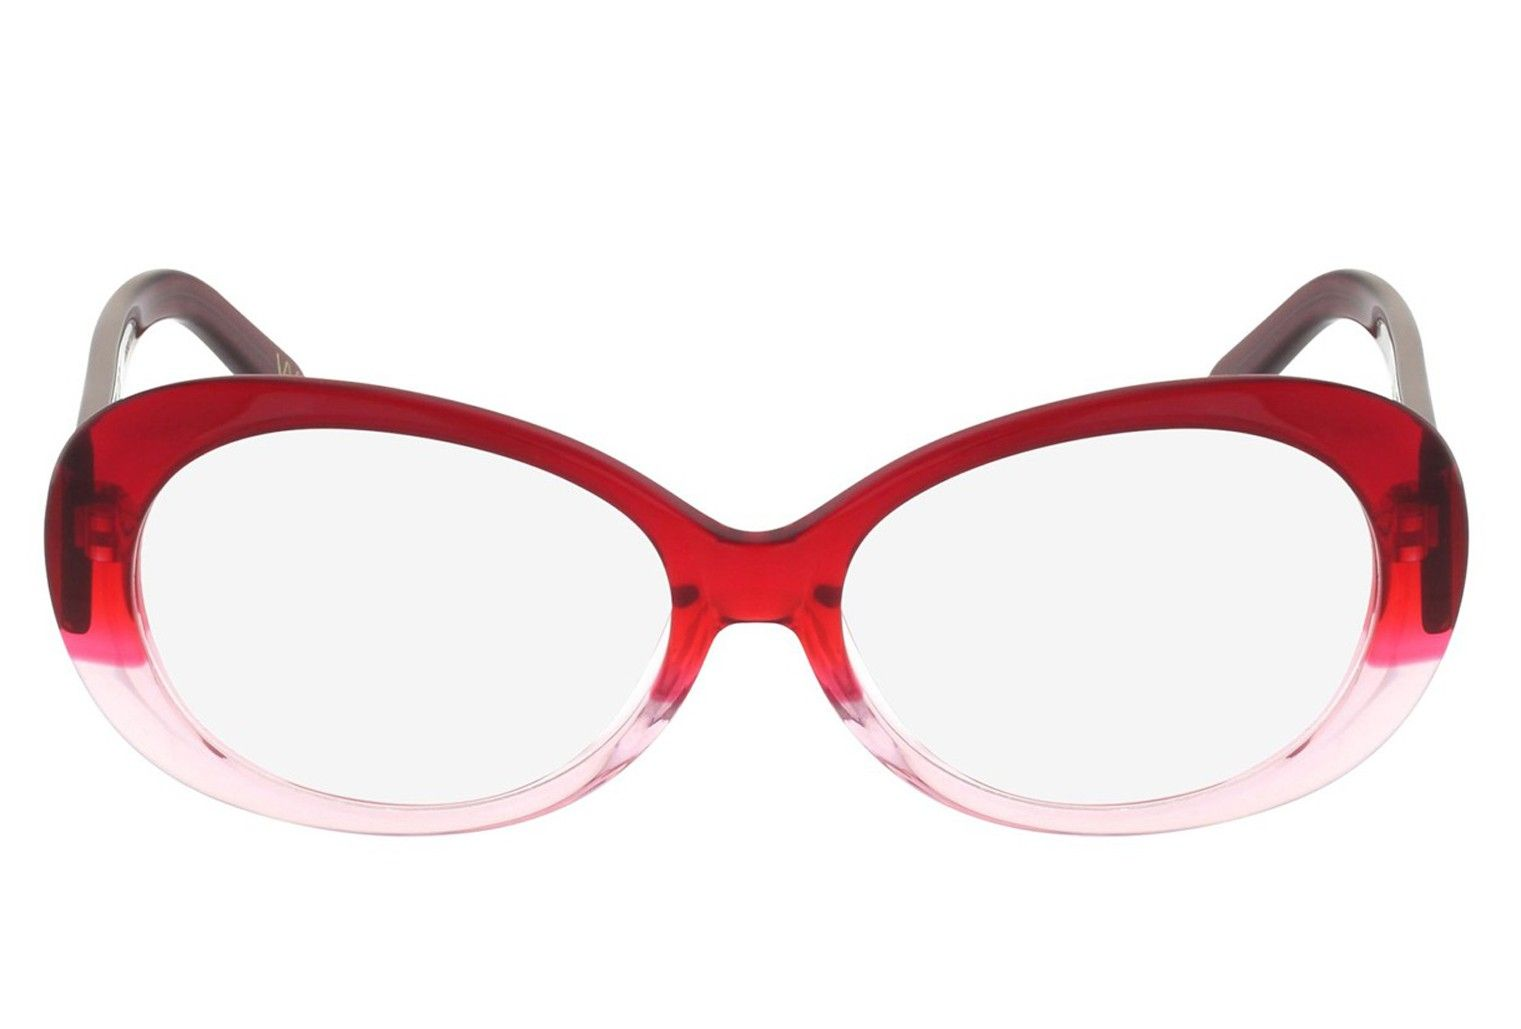 IT Oval Eyeglasses for Women